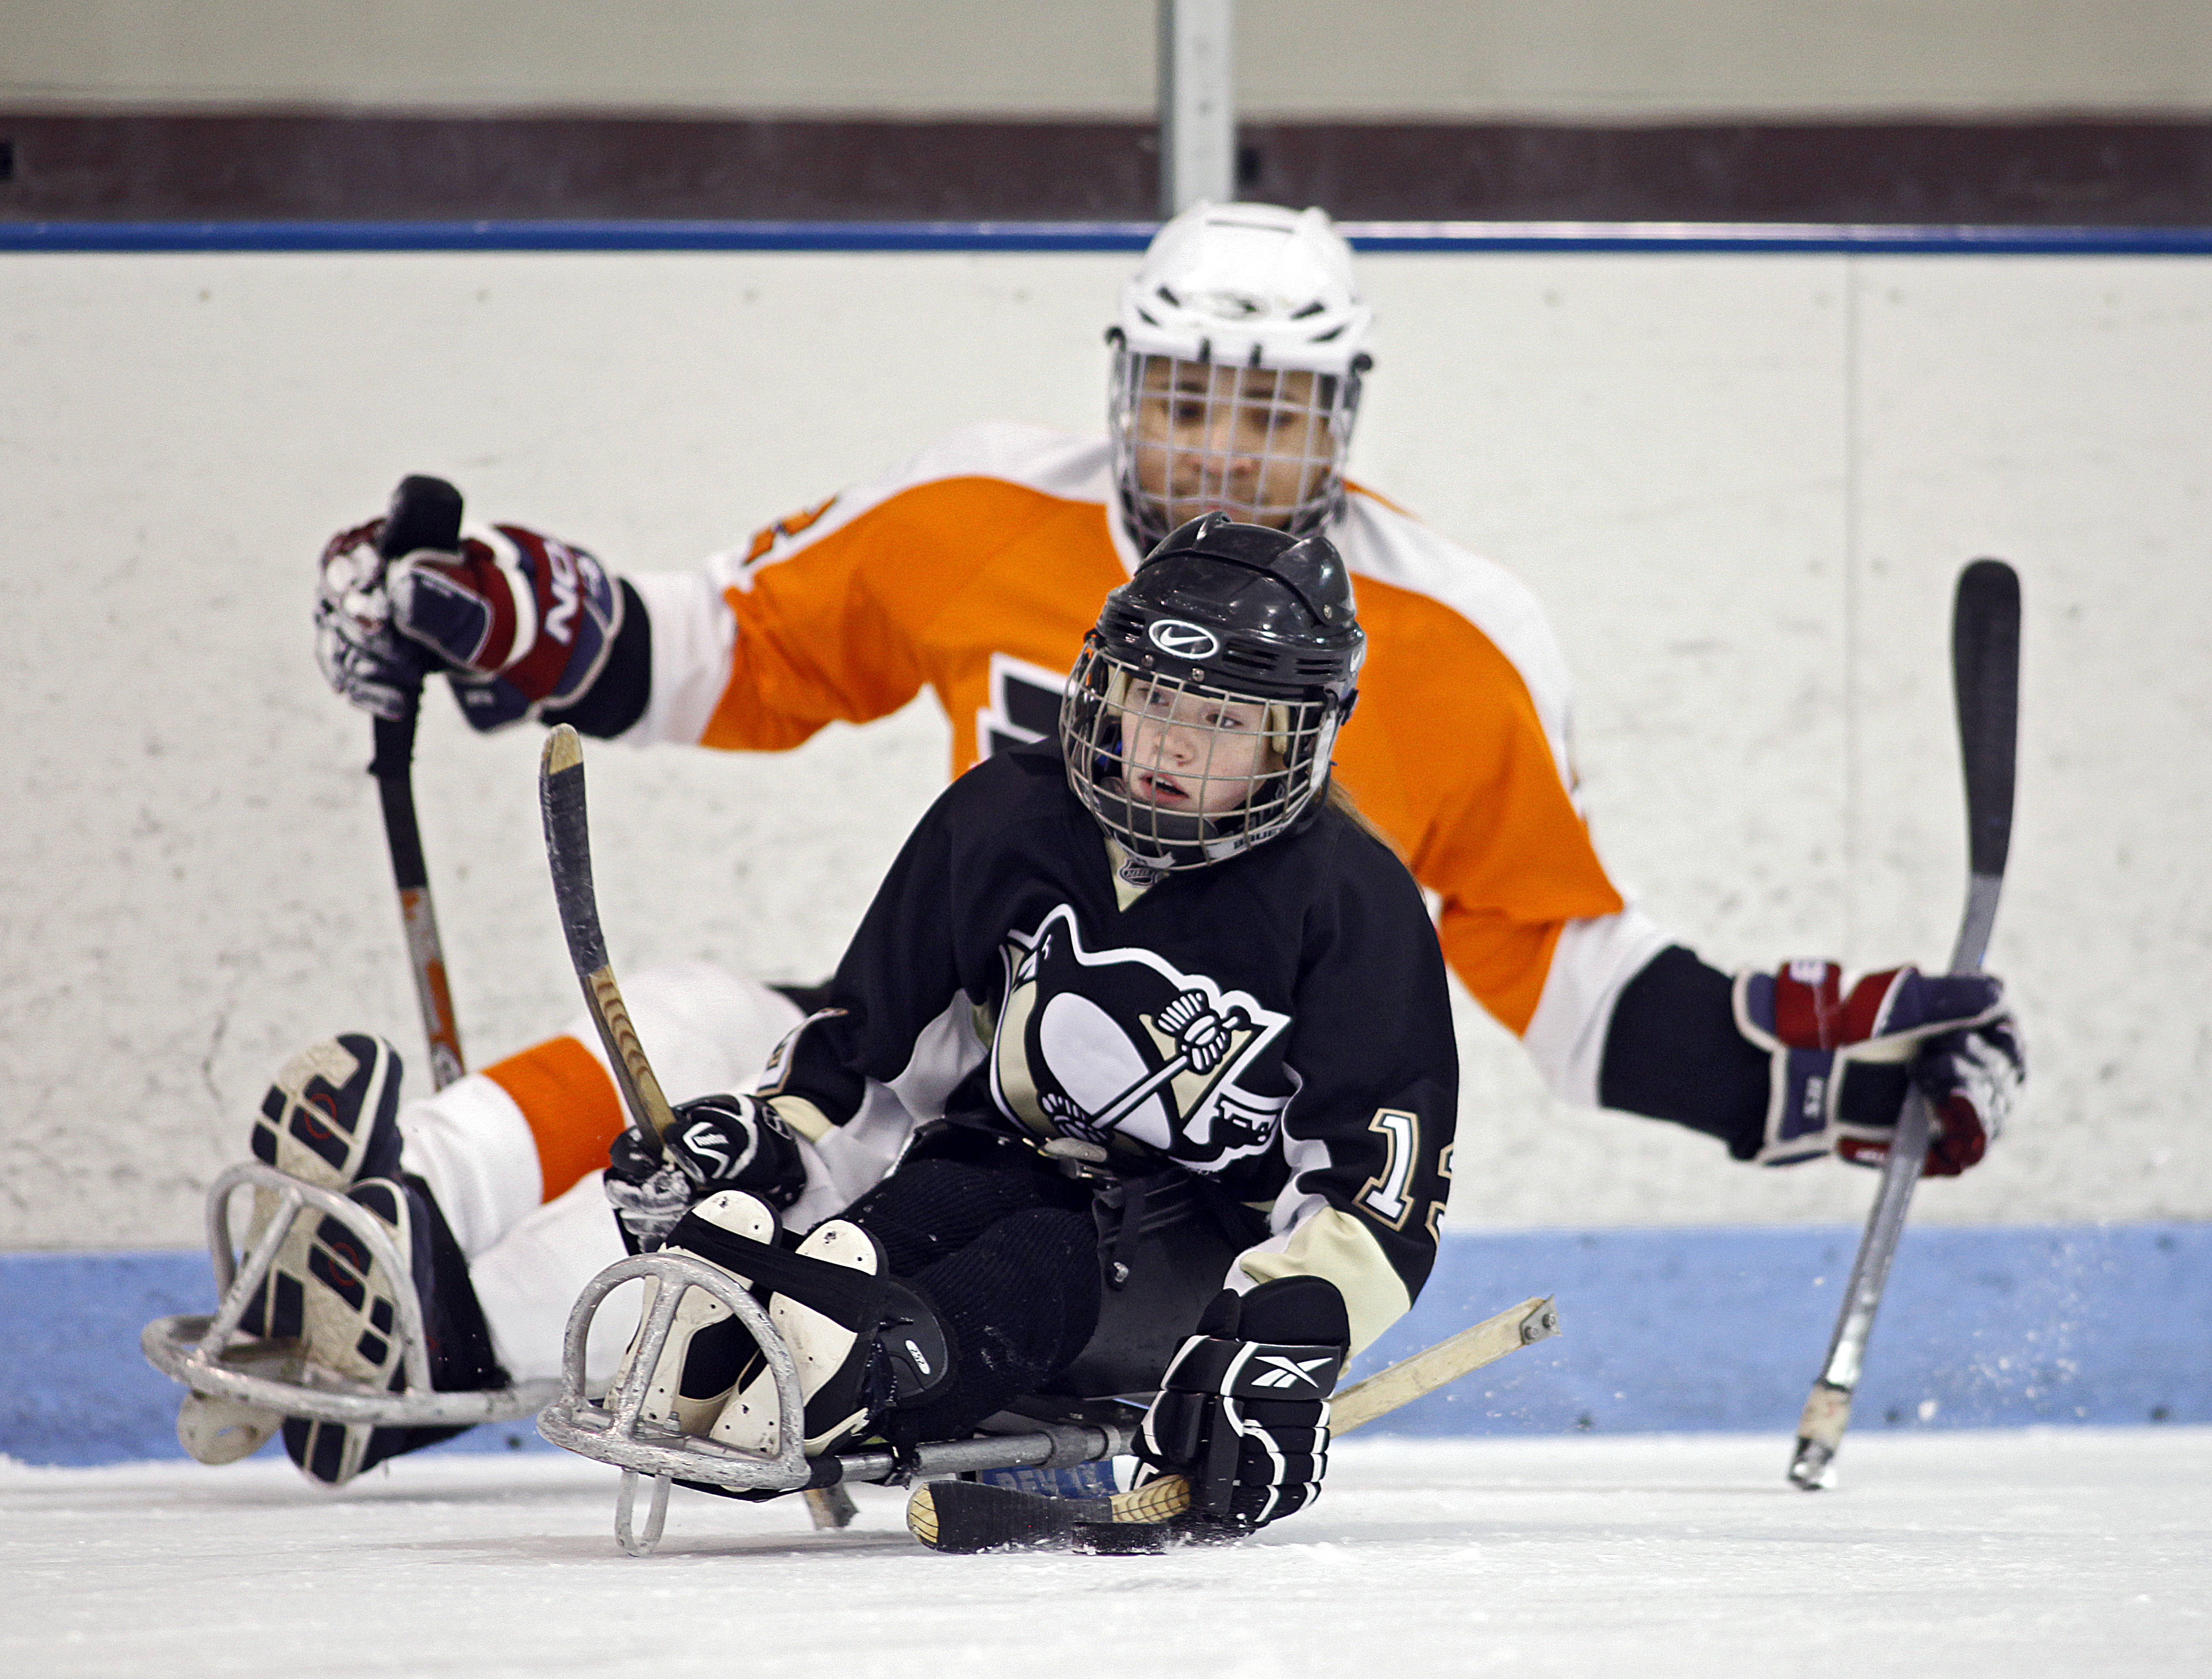 Sledge Hockey  Children learning the game at practice